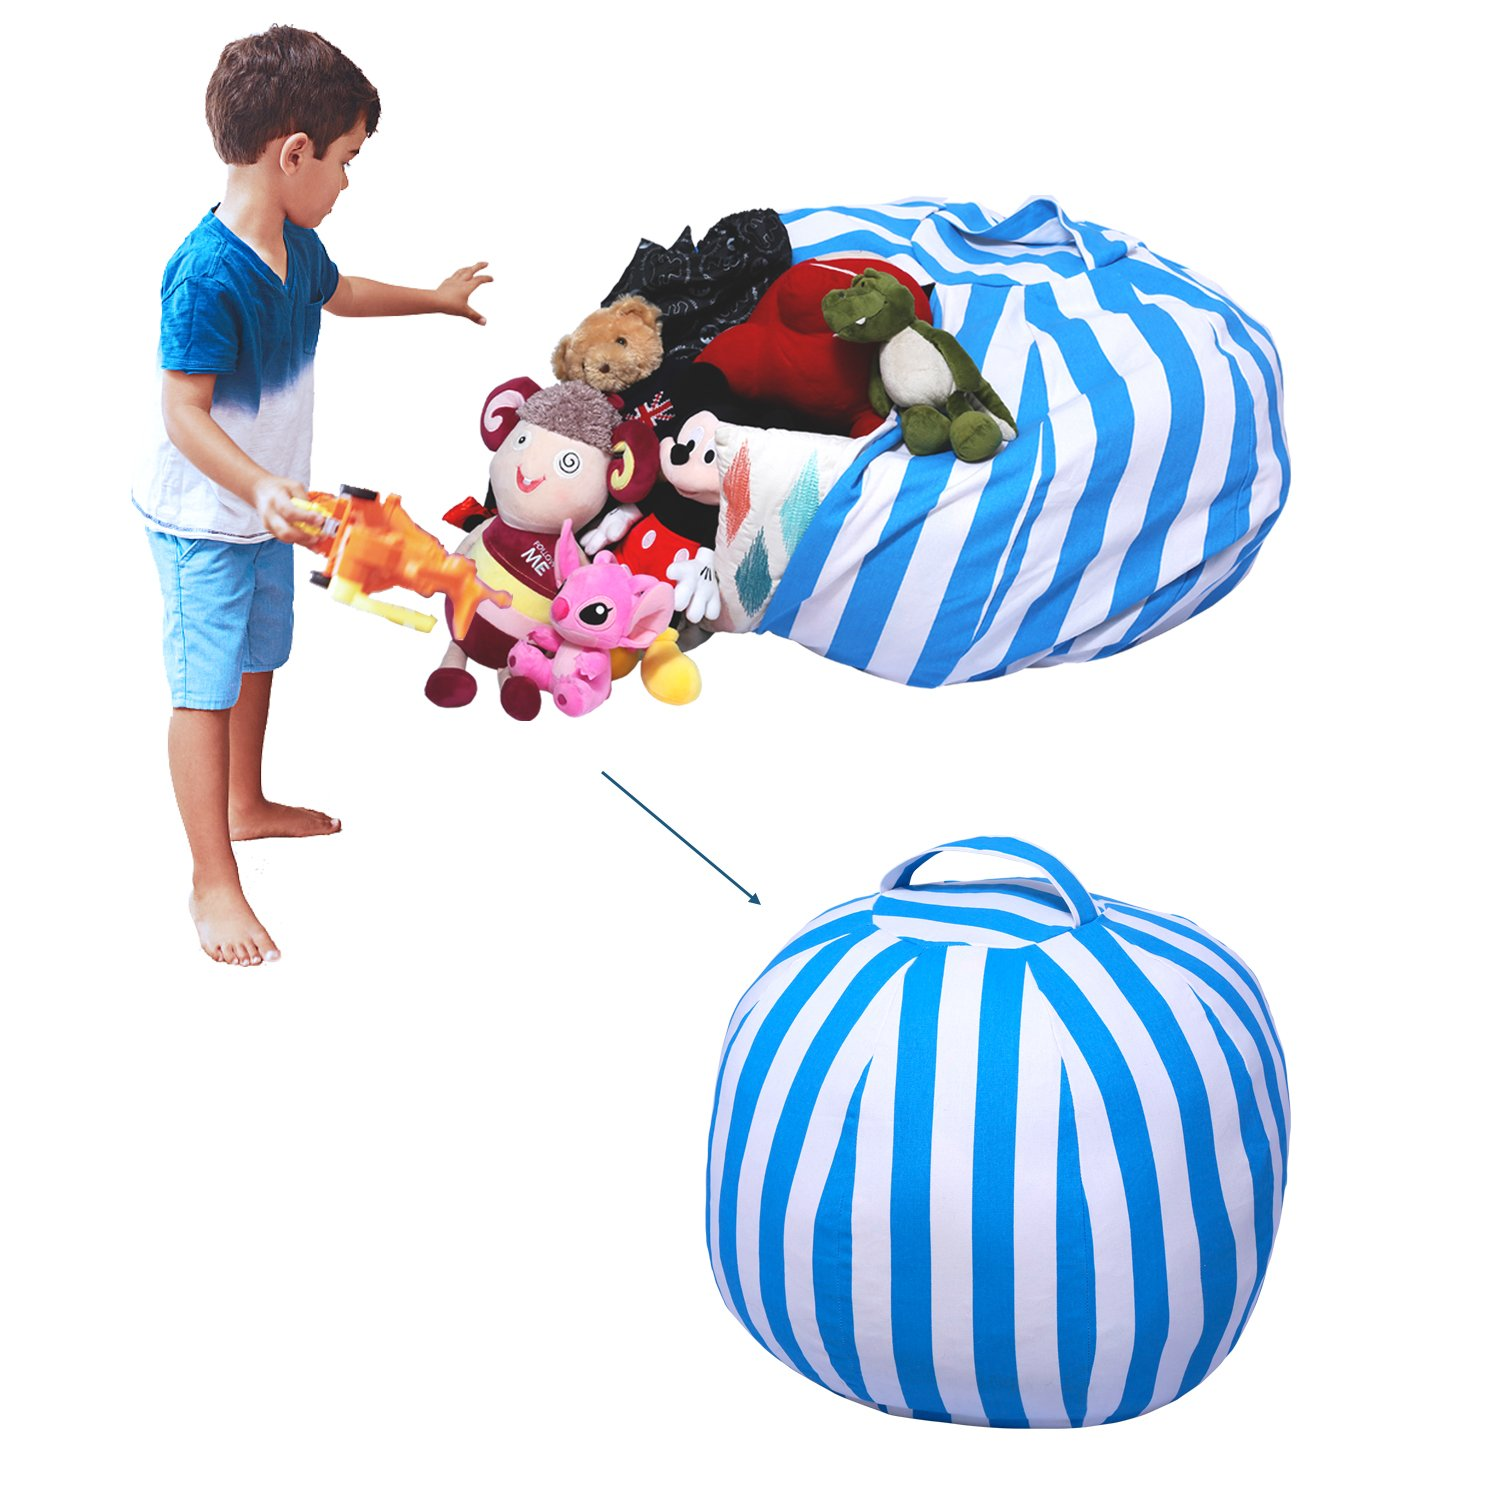 Yotree Stuffed Animal Storage Bean Bag Chair Useful Extra Large Kids Toy Organizer Clean up the Room and Put Those Critters in Order(Blue Stripes)